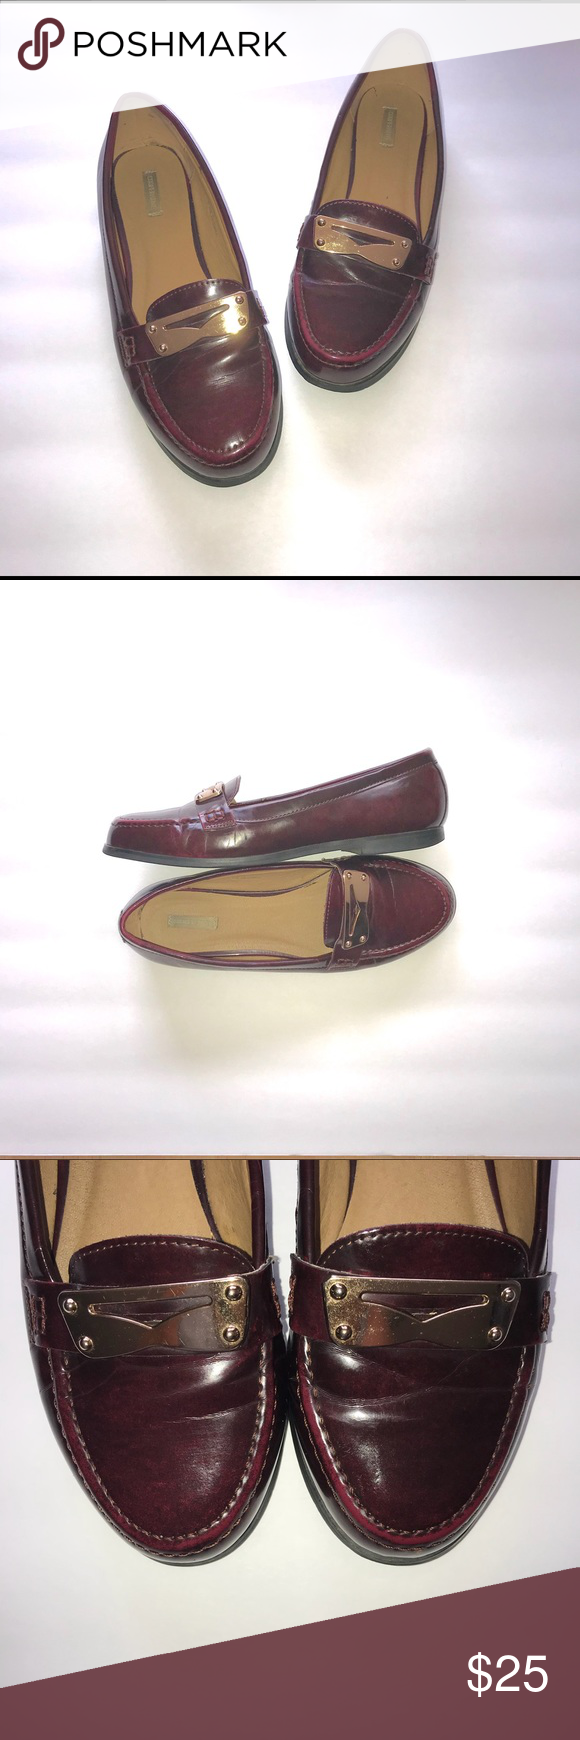 aa1c6aa22cb Burgundy Loafers w  Gold Accents • Cooperative Burgundy Loafers w  Gold  Accents • Cooperative Womens Size 7. Super cute patent leather Loafers •  Can be worn ...